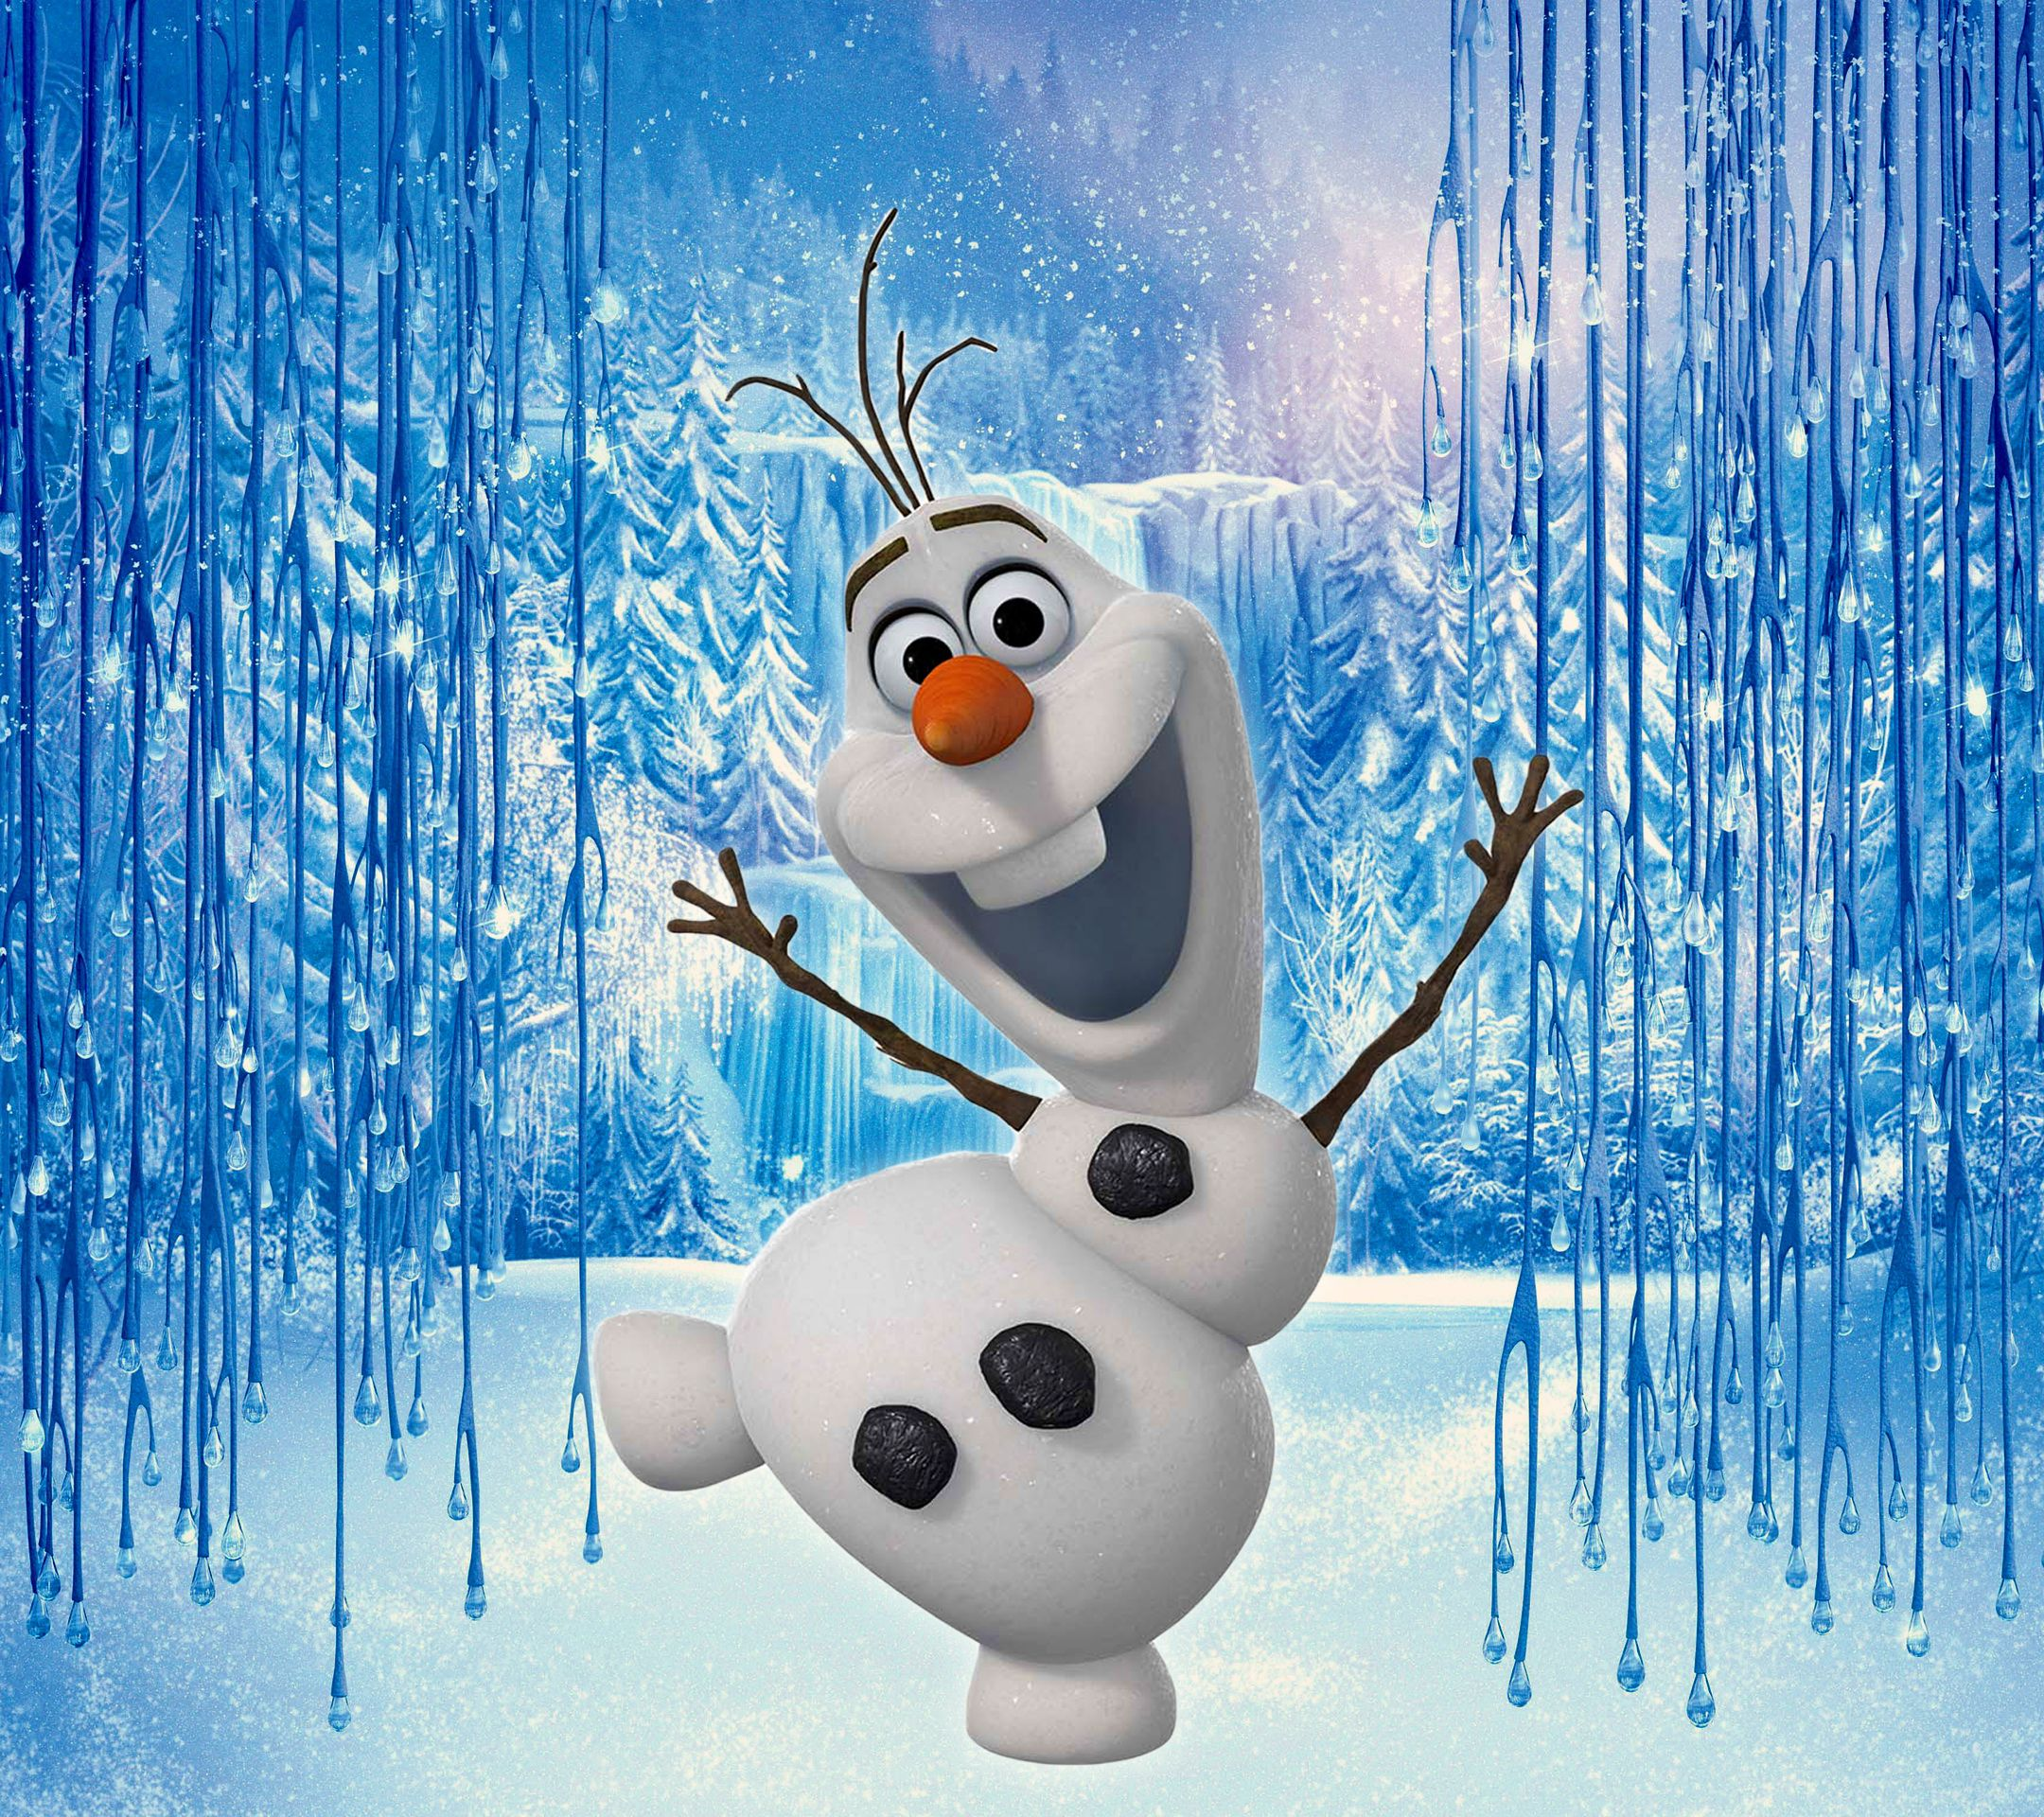 olaf wallpaper olaf frozen wallpaper papel de parede